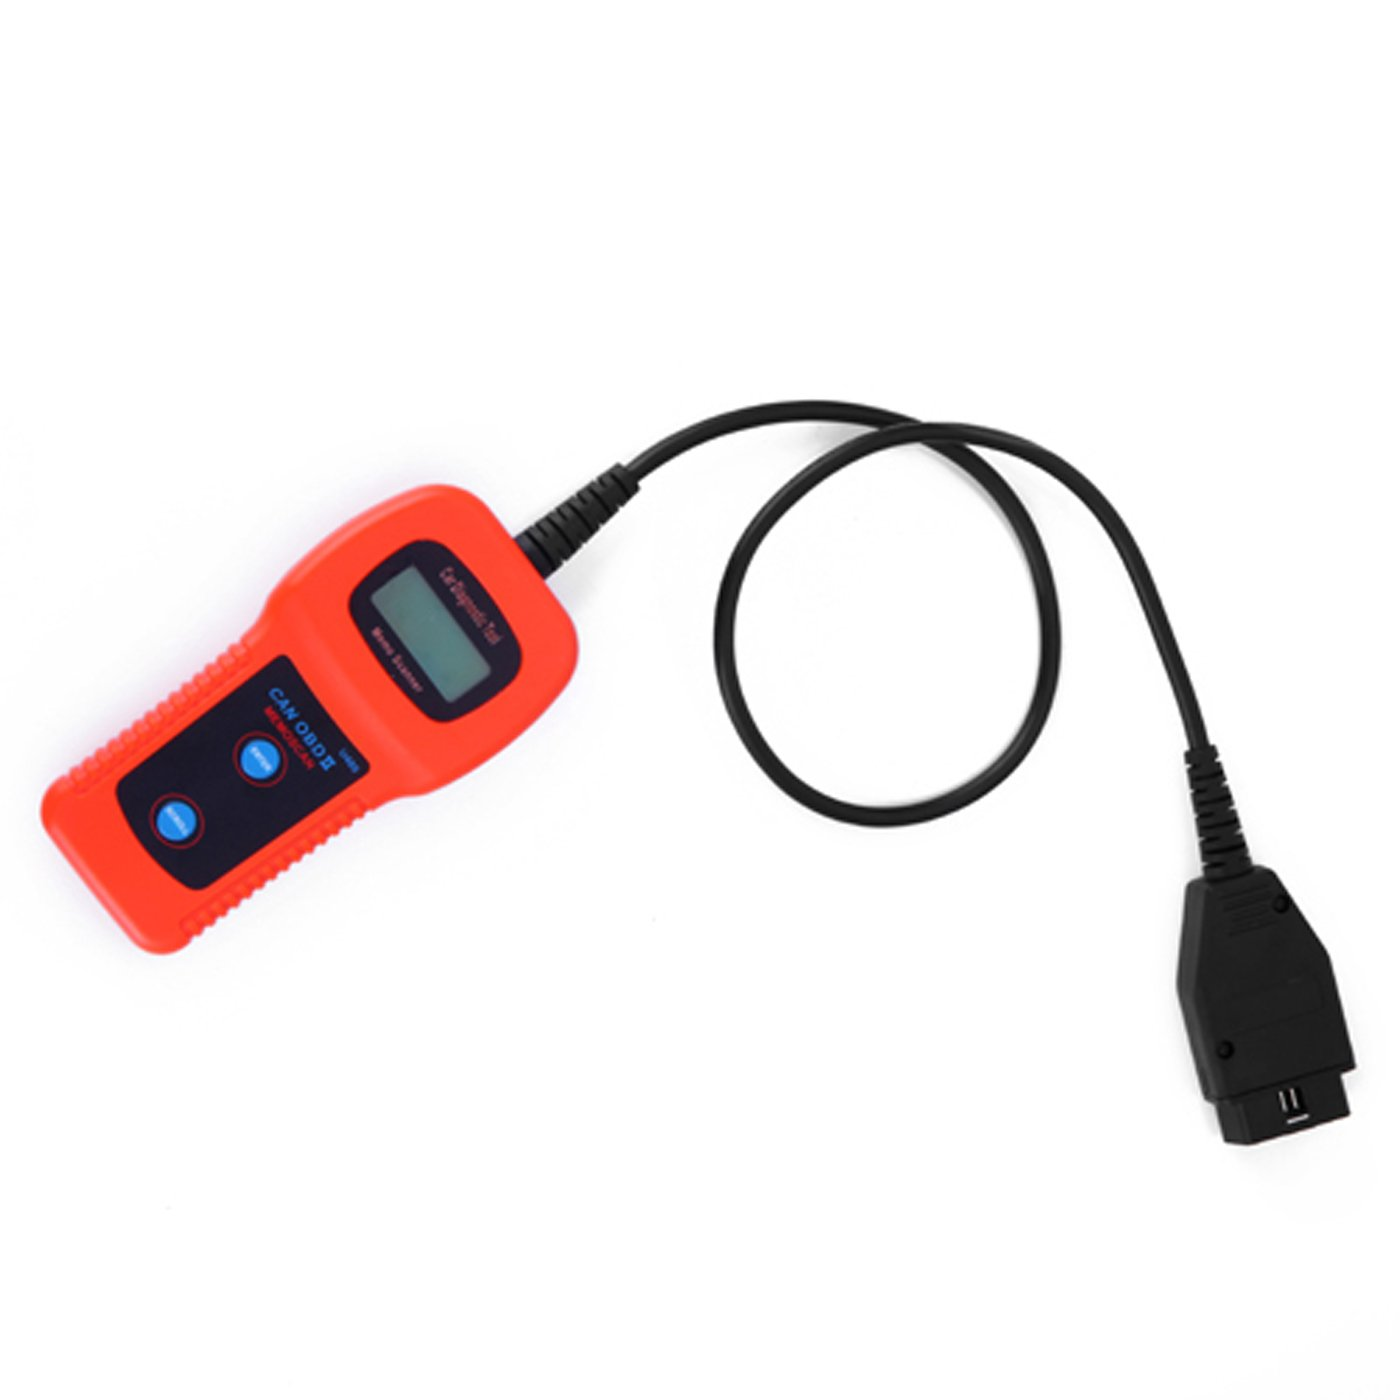 HDE U480 CAN-BUS OBD2 OBDII Car Scanner Universal Fault Code Reader Auto Diagnostics Tool Check Engine Light with LED Display by HDE (Image #4)